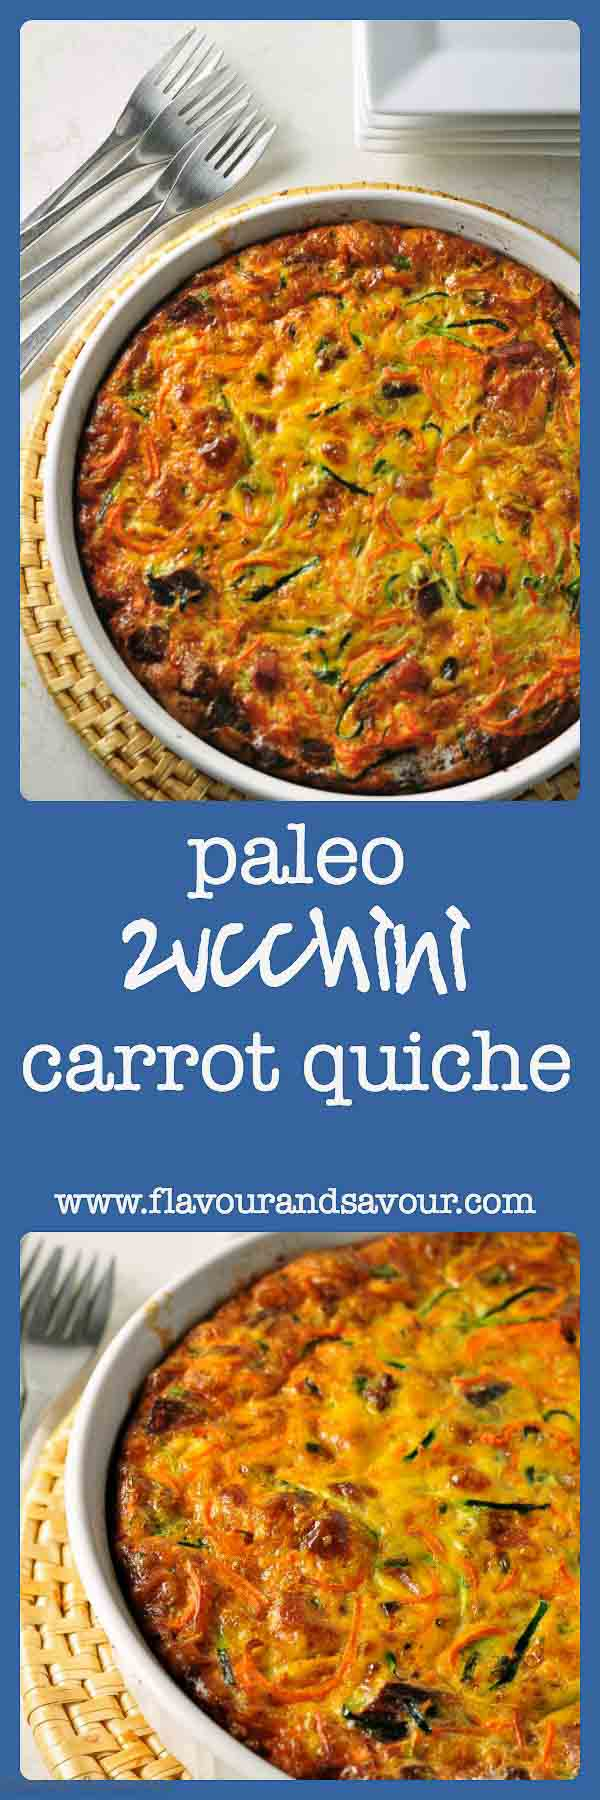 Paleo Zucchini-Carrot Quiche. A crustless quiche full of healthy vegetables and flavoured with bacon, fresh rosemary and chives. Great for lunch the following day! #paleo #crustless #quiche #zucchini #carrots #eggs #bacon